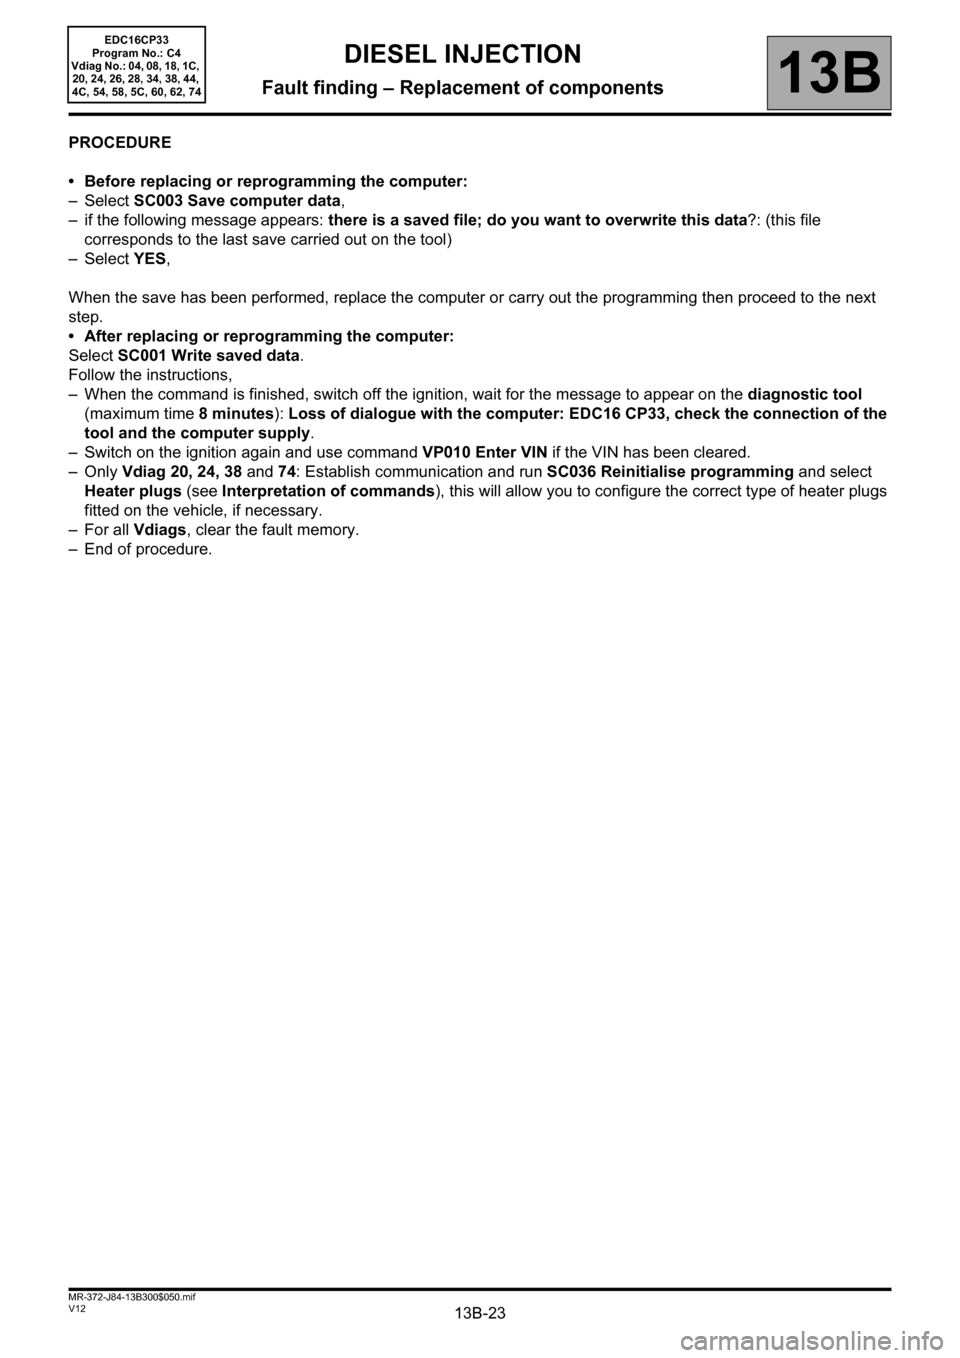 RENAULT SCENIC 2012 J95 / 3.G Engine And Peripherals EDC16CP33 Workshop Manual, Page 23